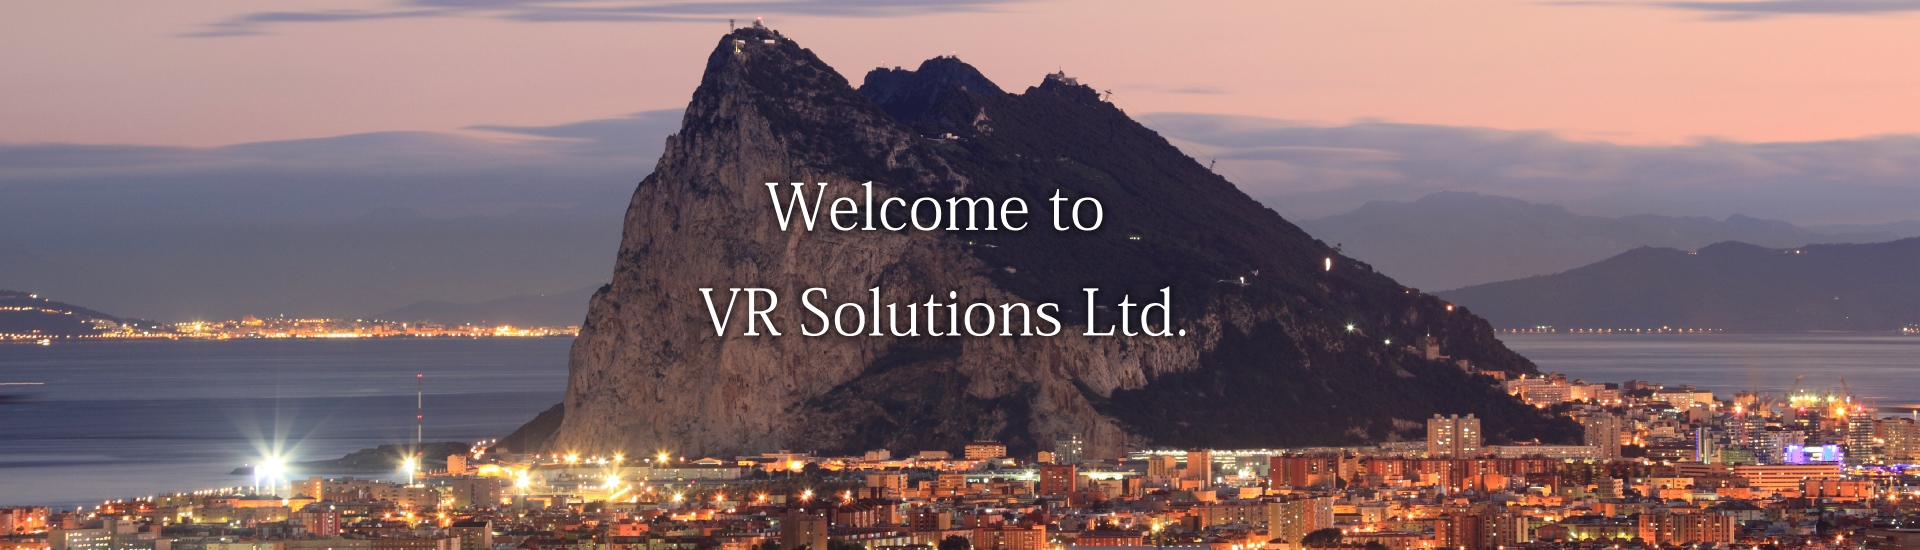 Welcome to VR Solutions